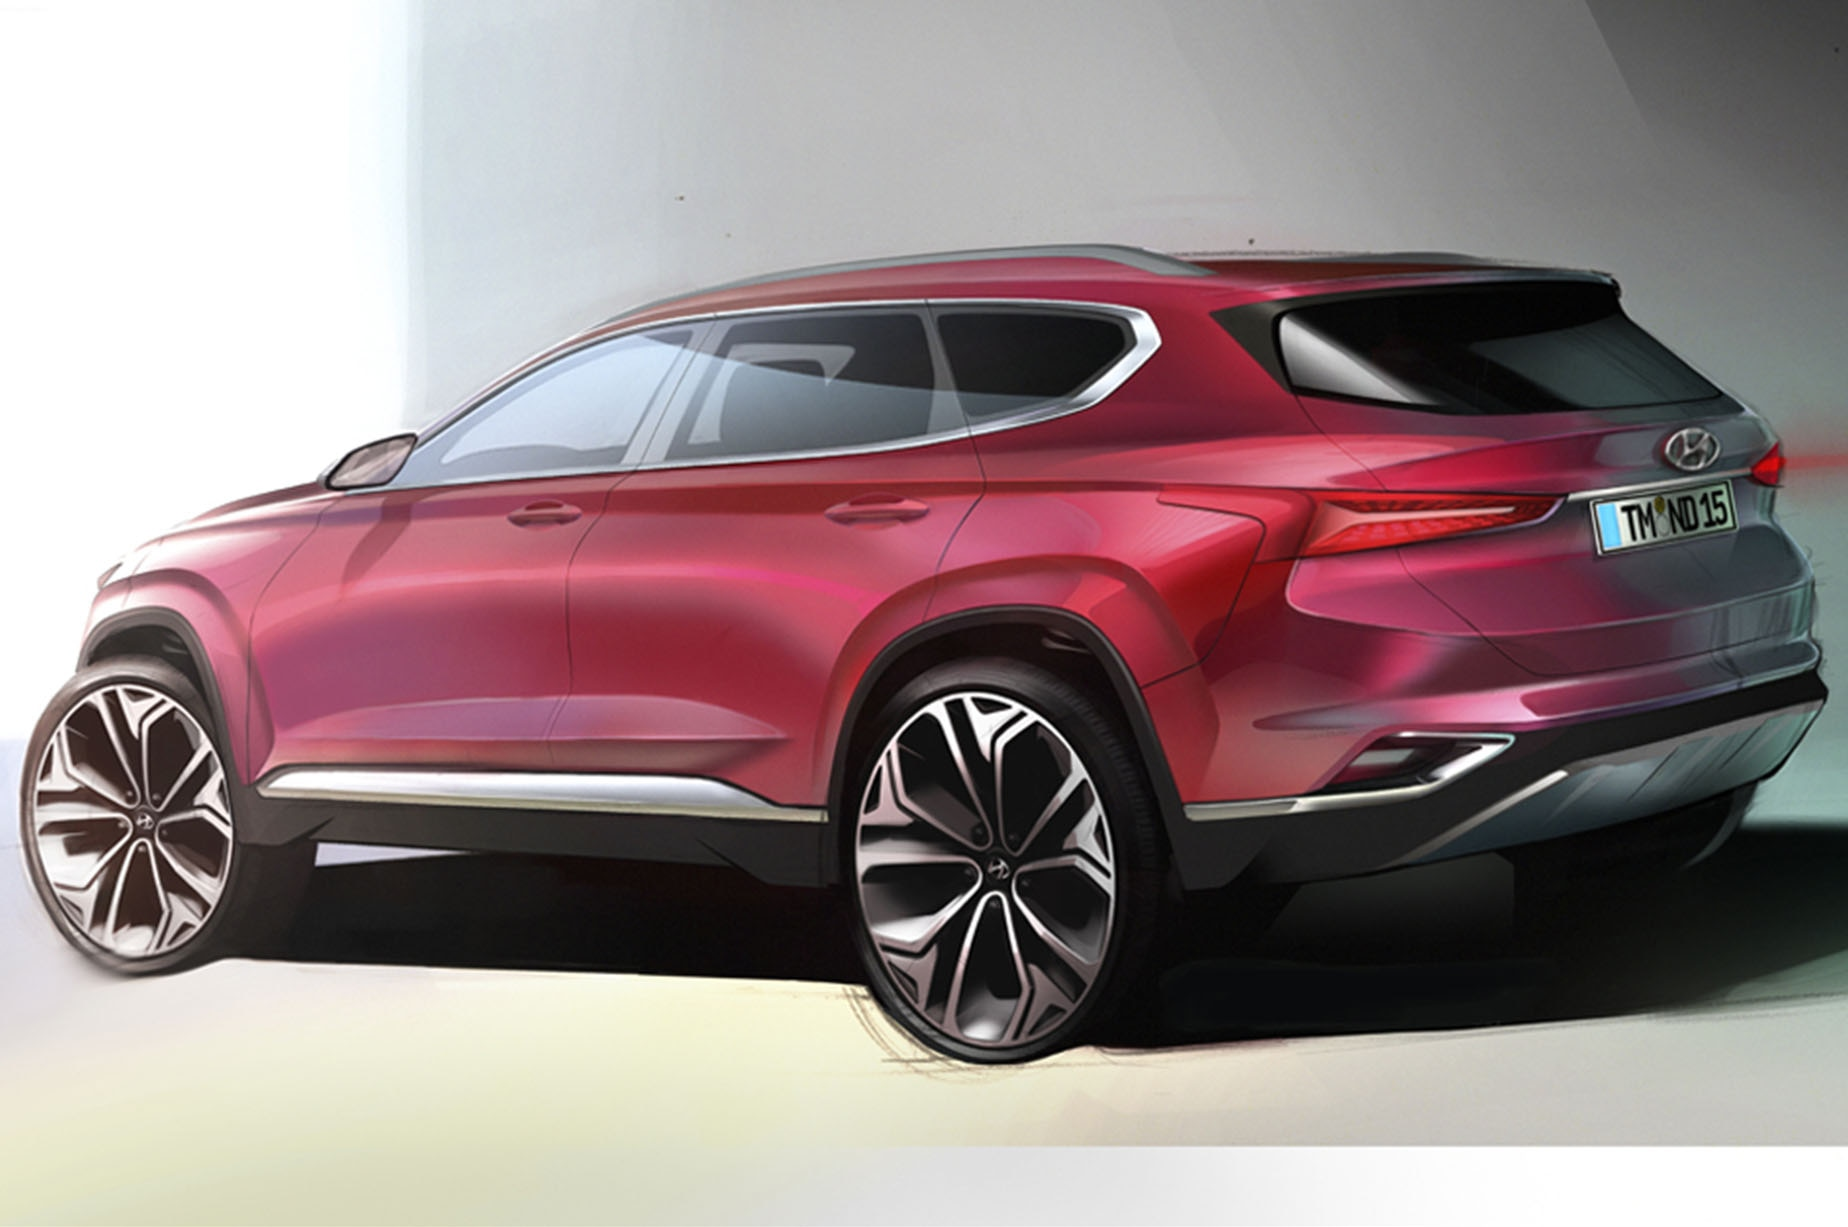 Hyundai Motor to Launch All-New Santa Fe SUV Next Month